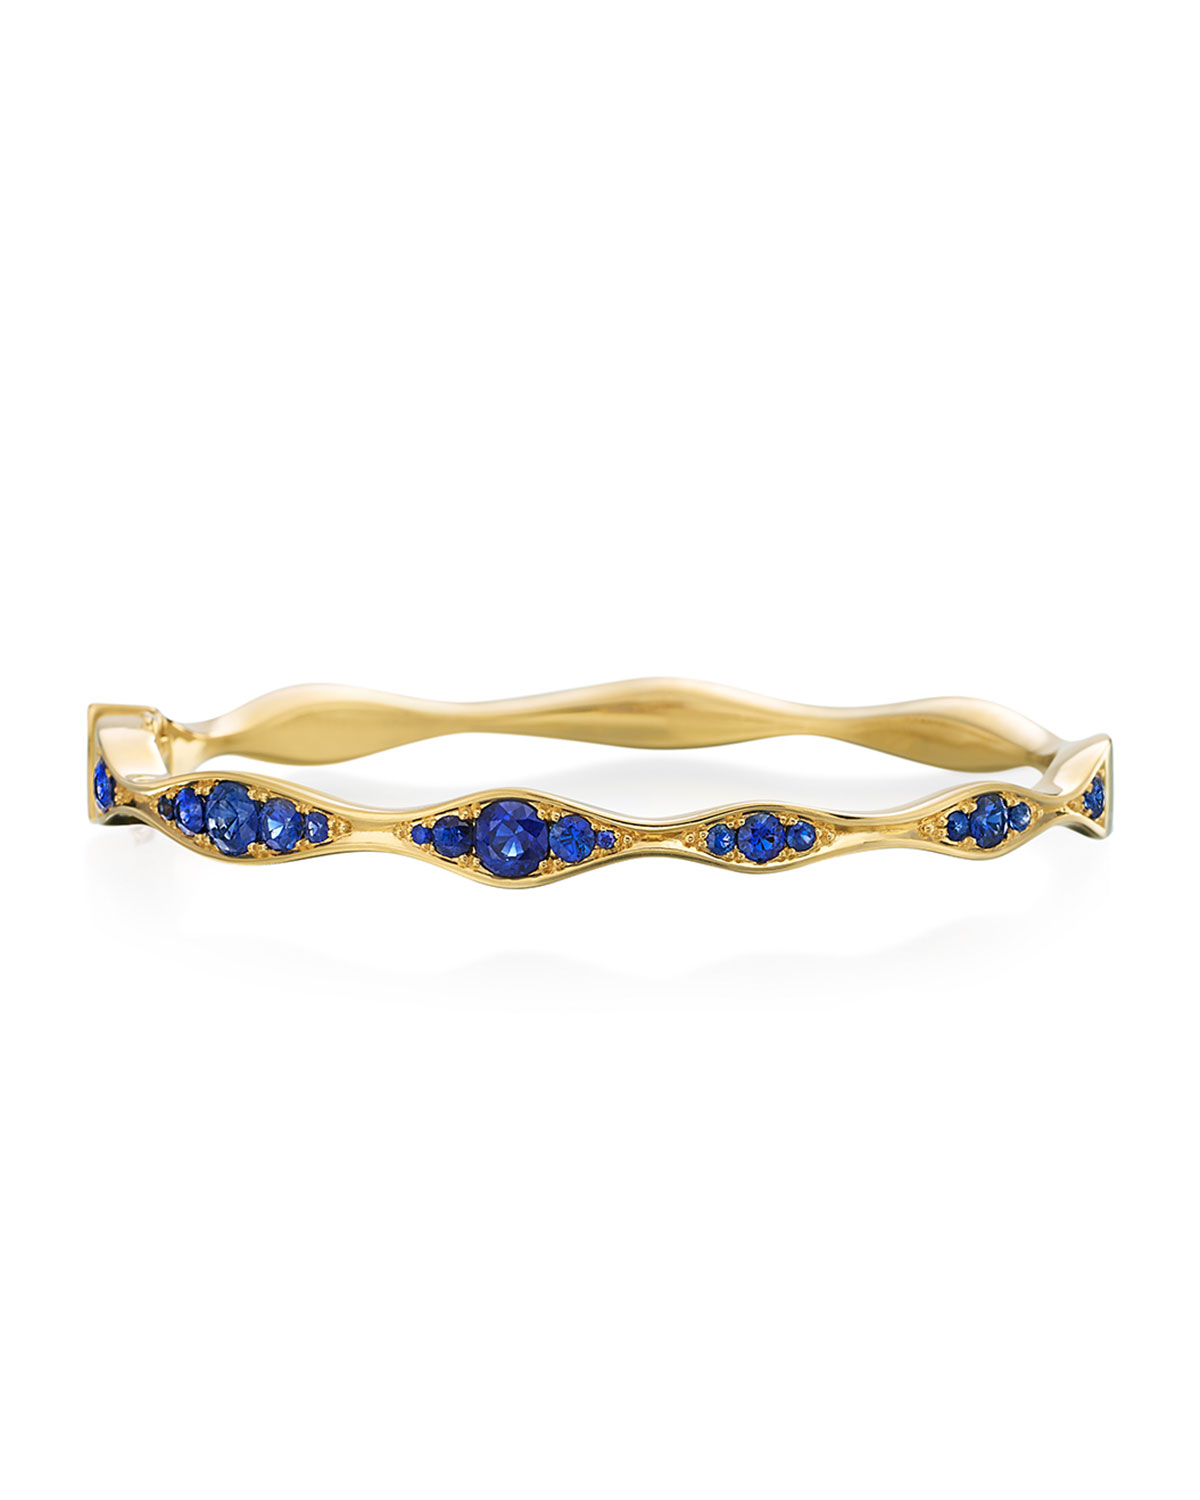 MARIA CANALE 18K Gold Half Blue Sapphire Wave Bangle